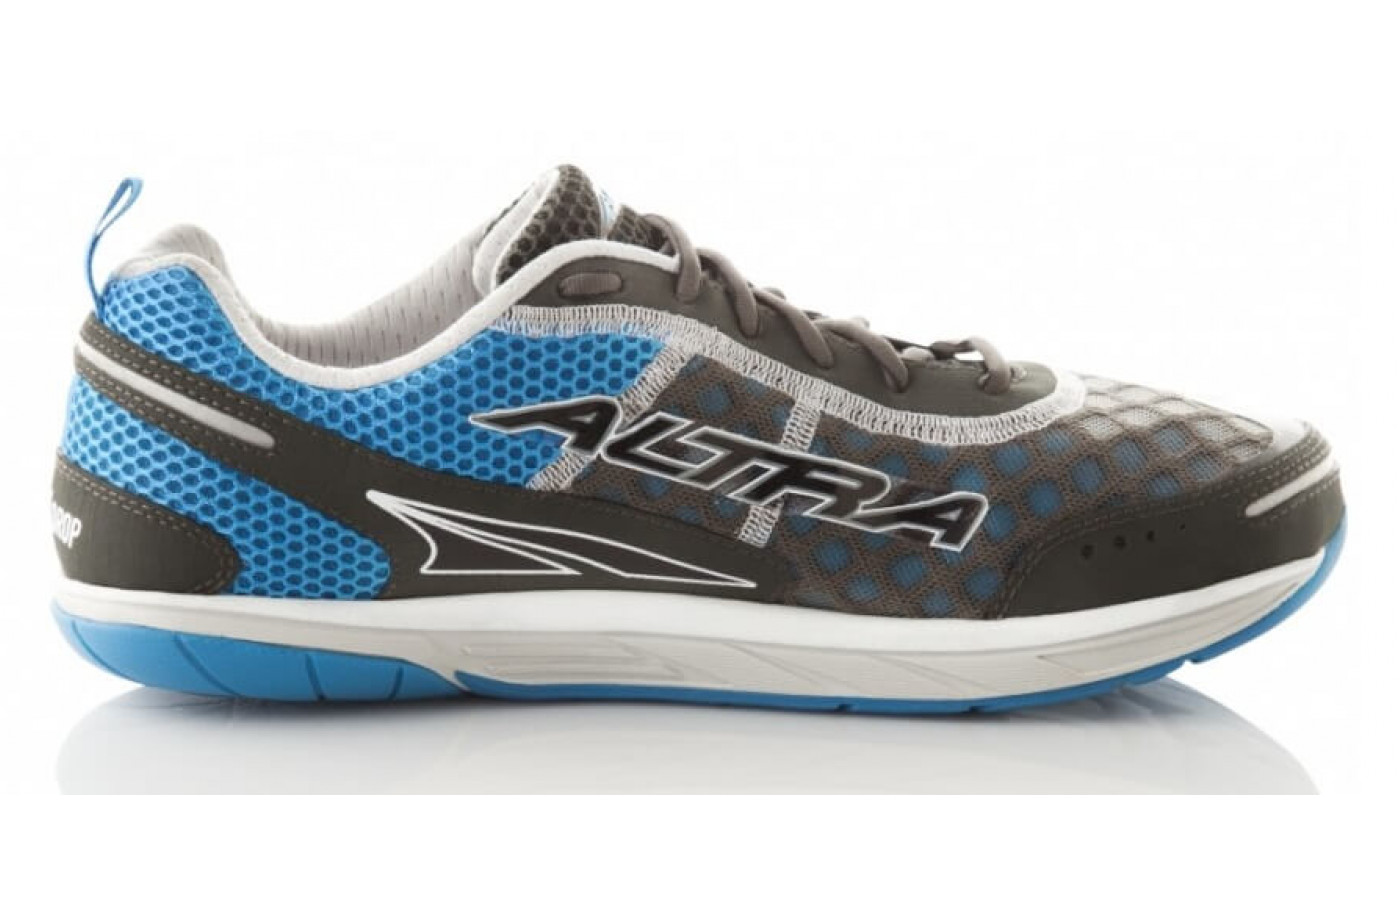 The Altra Instinct 1.5 features a zero-drop design